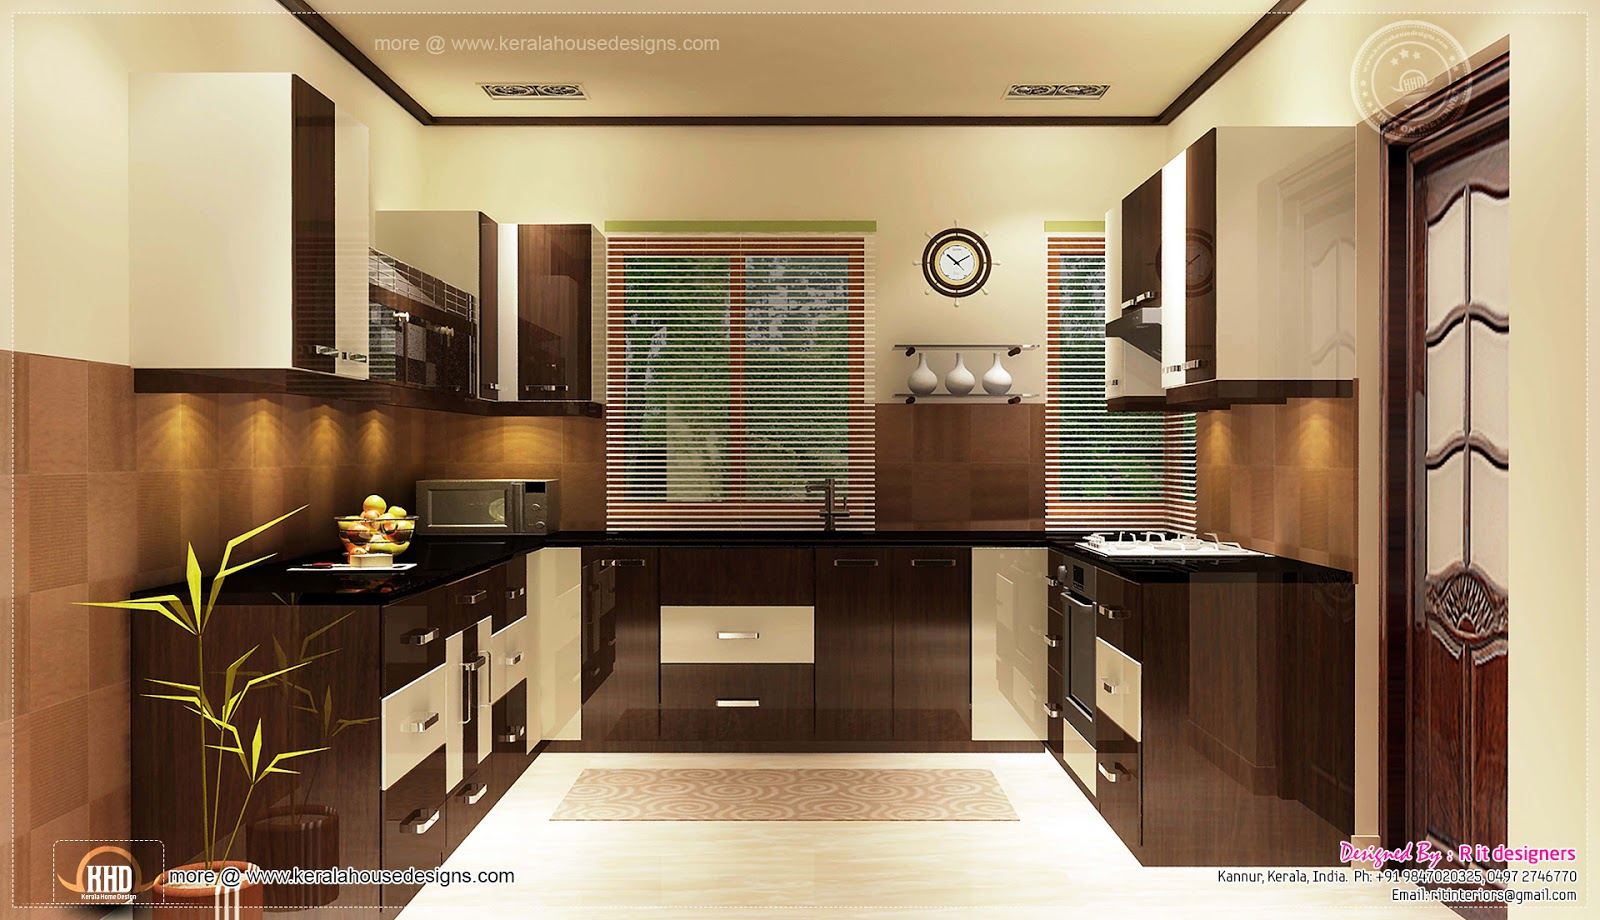 Home interior designs by rit designers kerala home for Interior designs at home